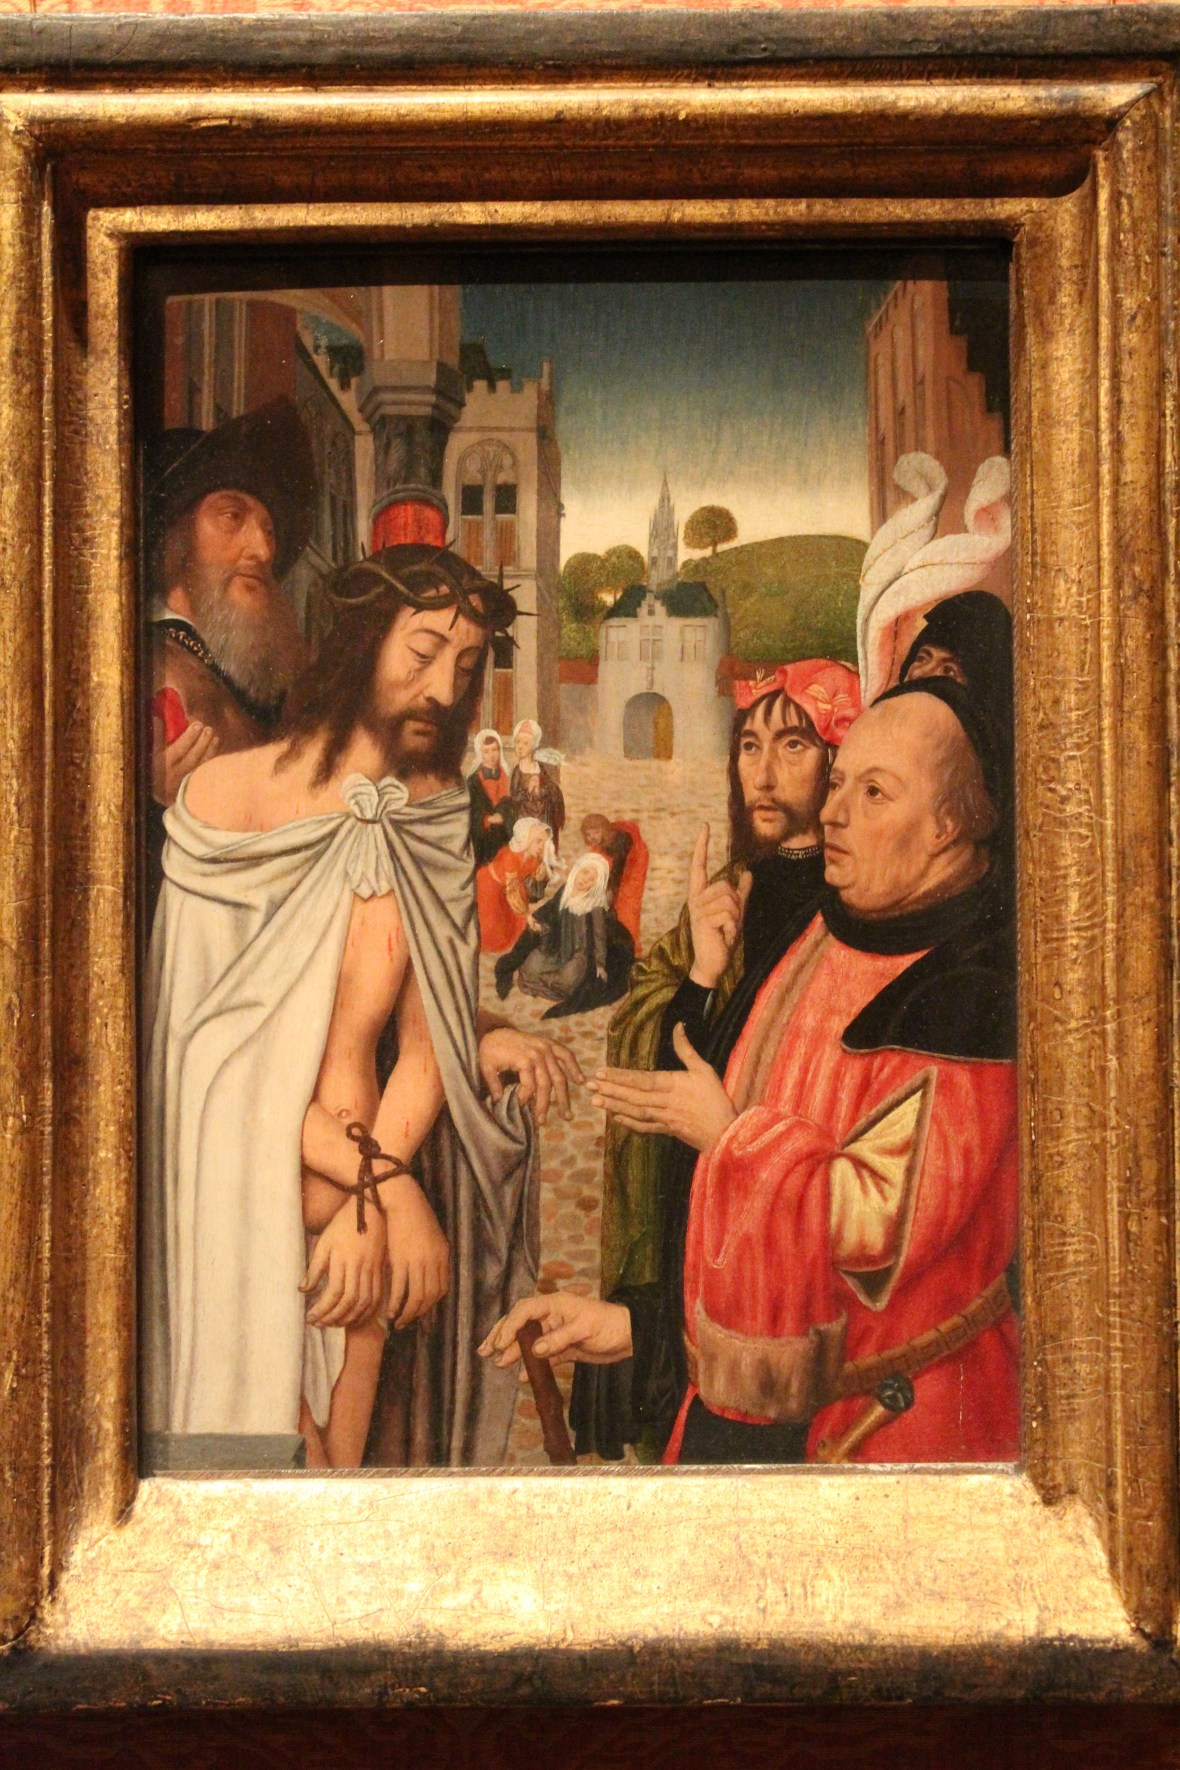 Jan Mostaert, Christ Shown to the People, 1510 -1515